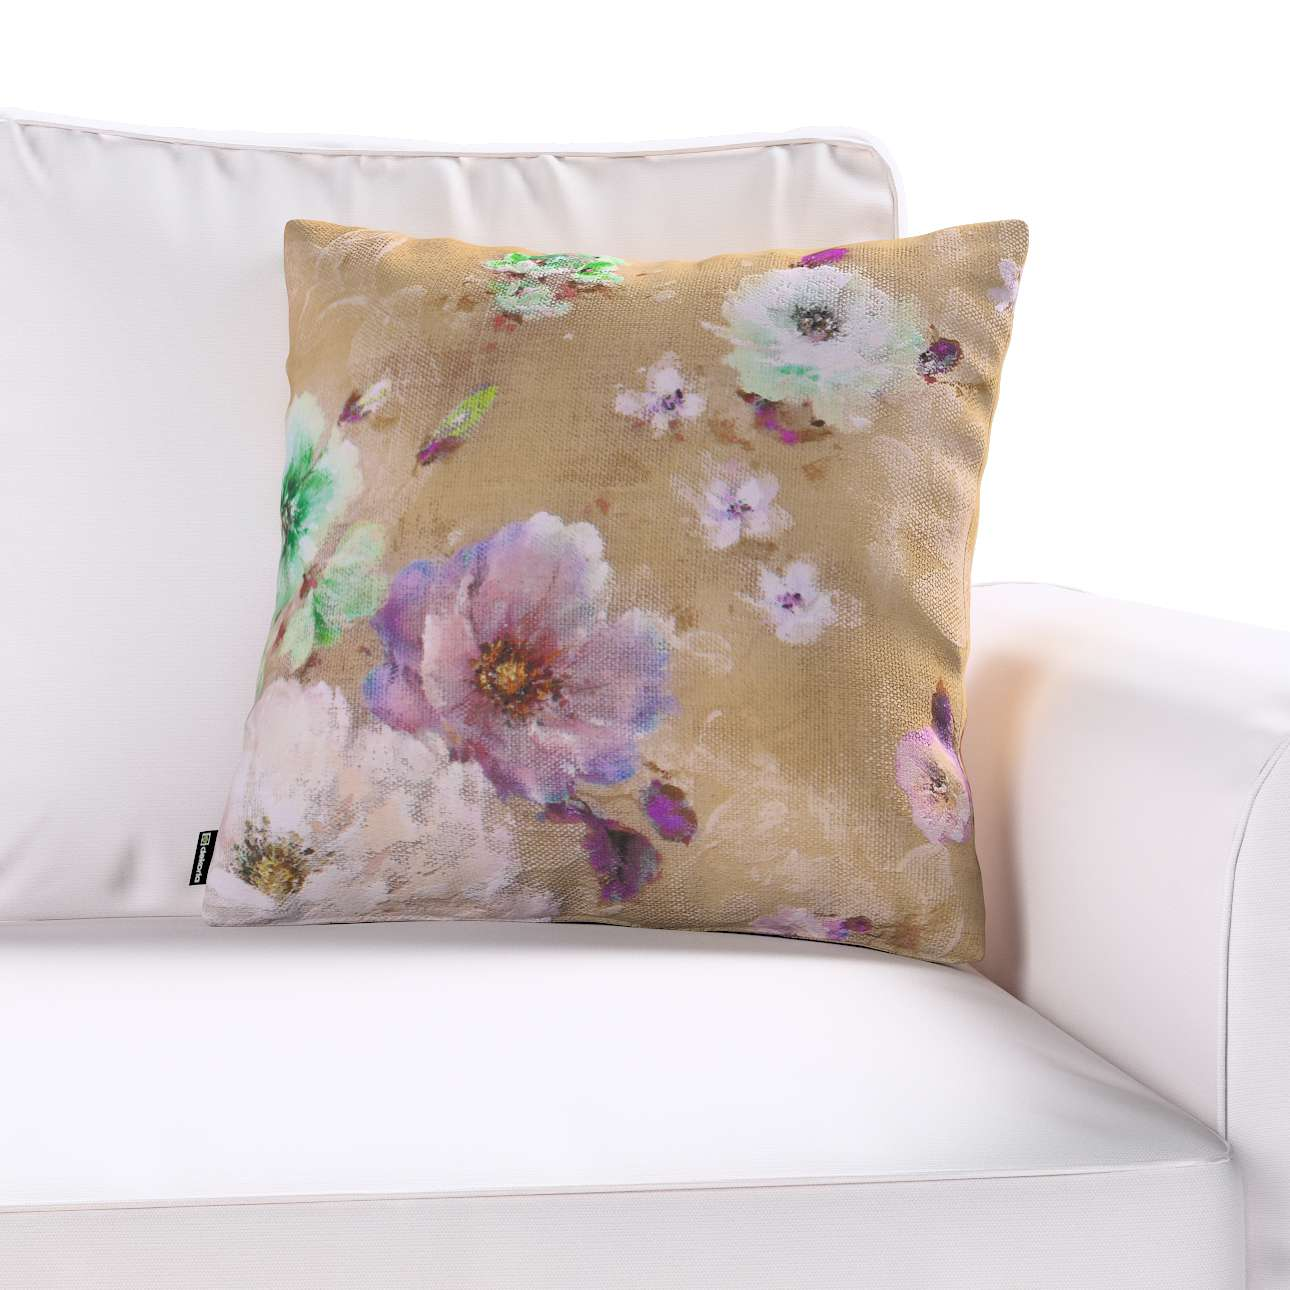 Kinga cushion cover in collection Monet, fabric: 137-82